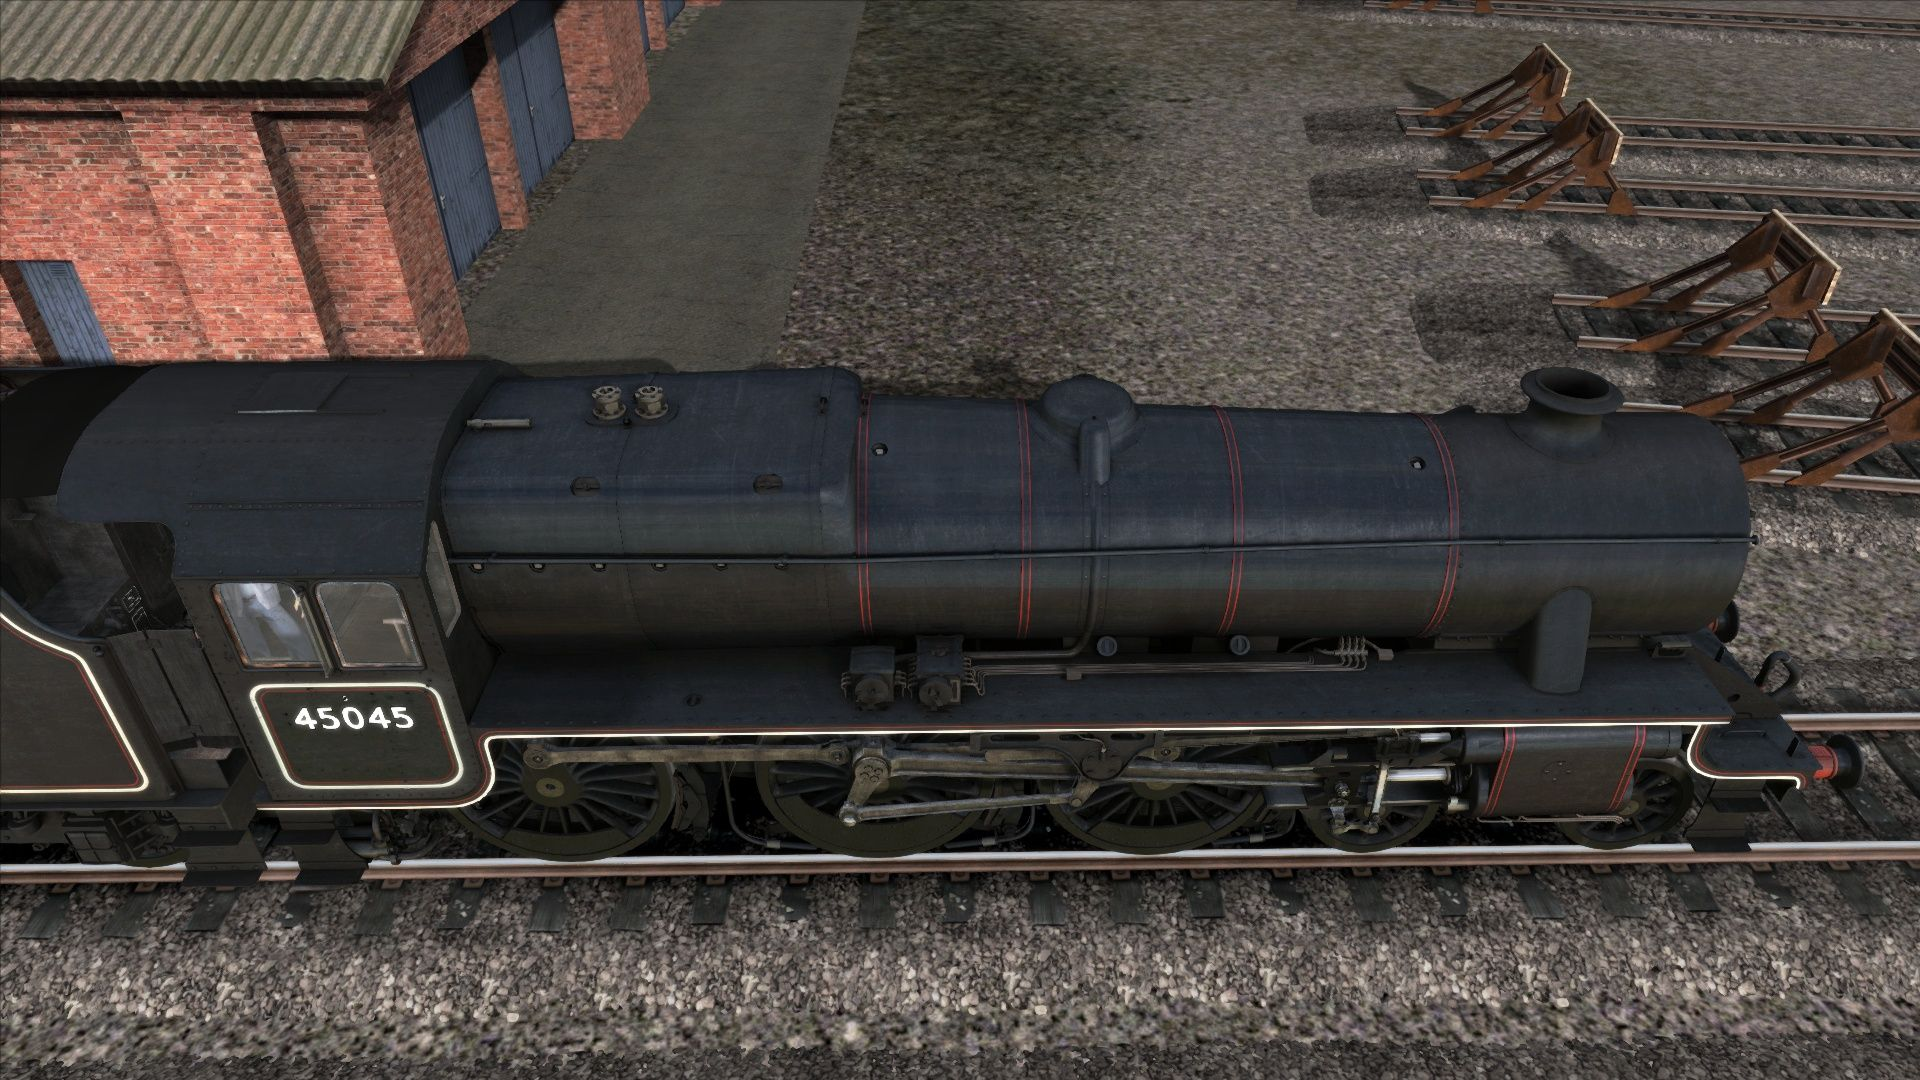 LMS Black 5 - The Domeless Engines